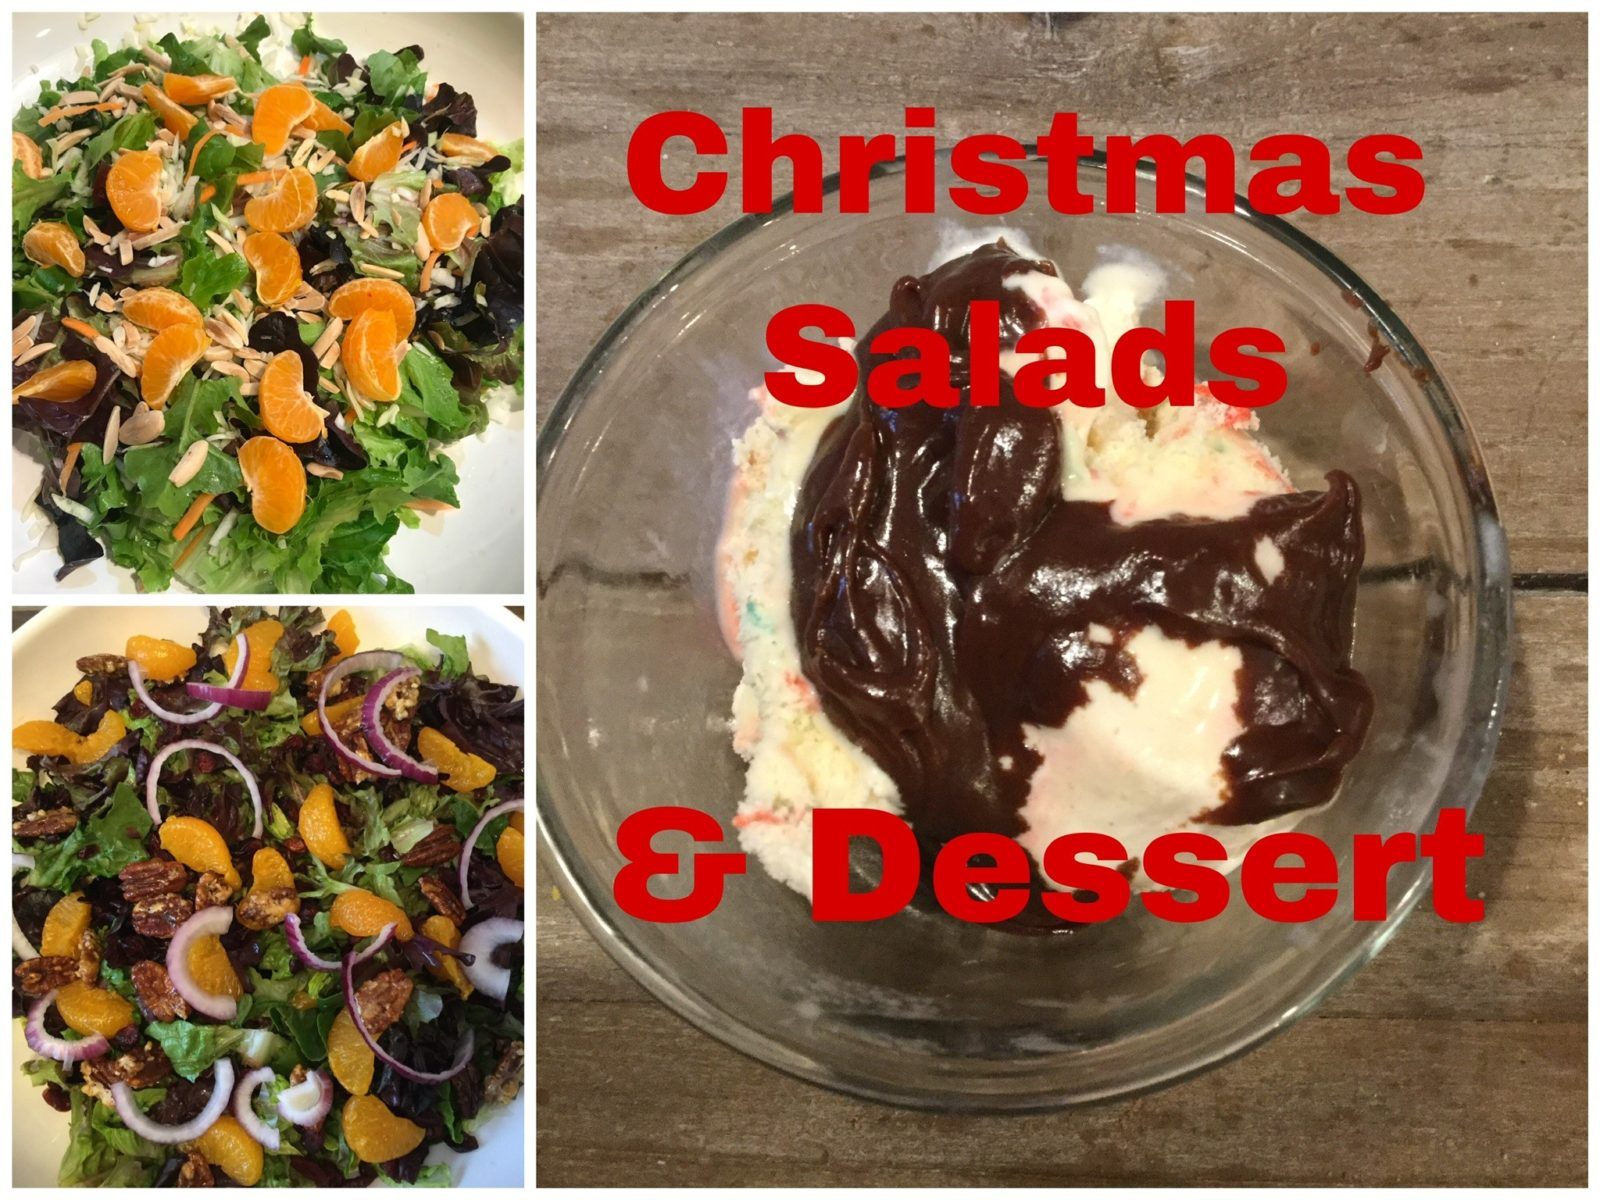 Christmas Salads and Dessert